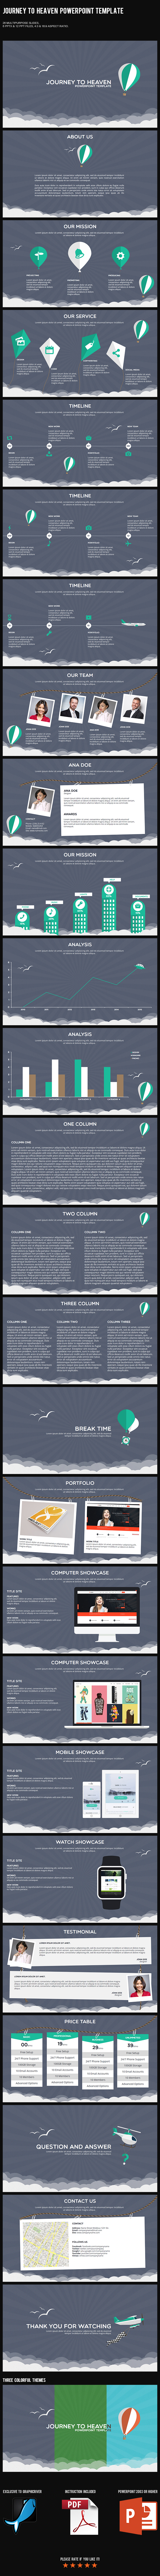 Journey to Heaven PowerPoint Template - PowerPoint Templates Presentation Templates